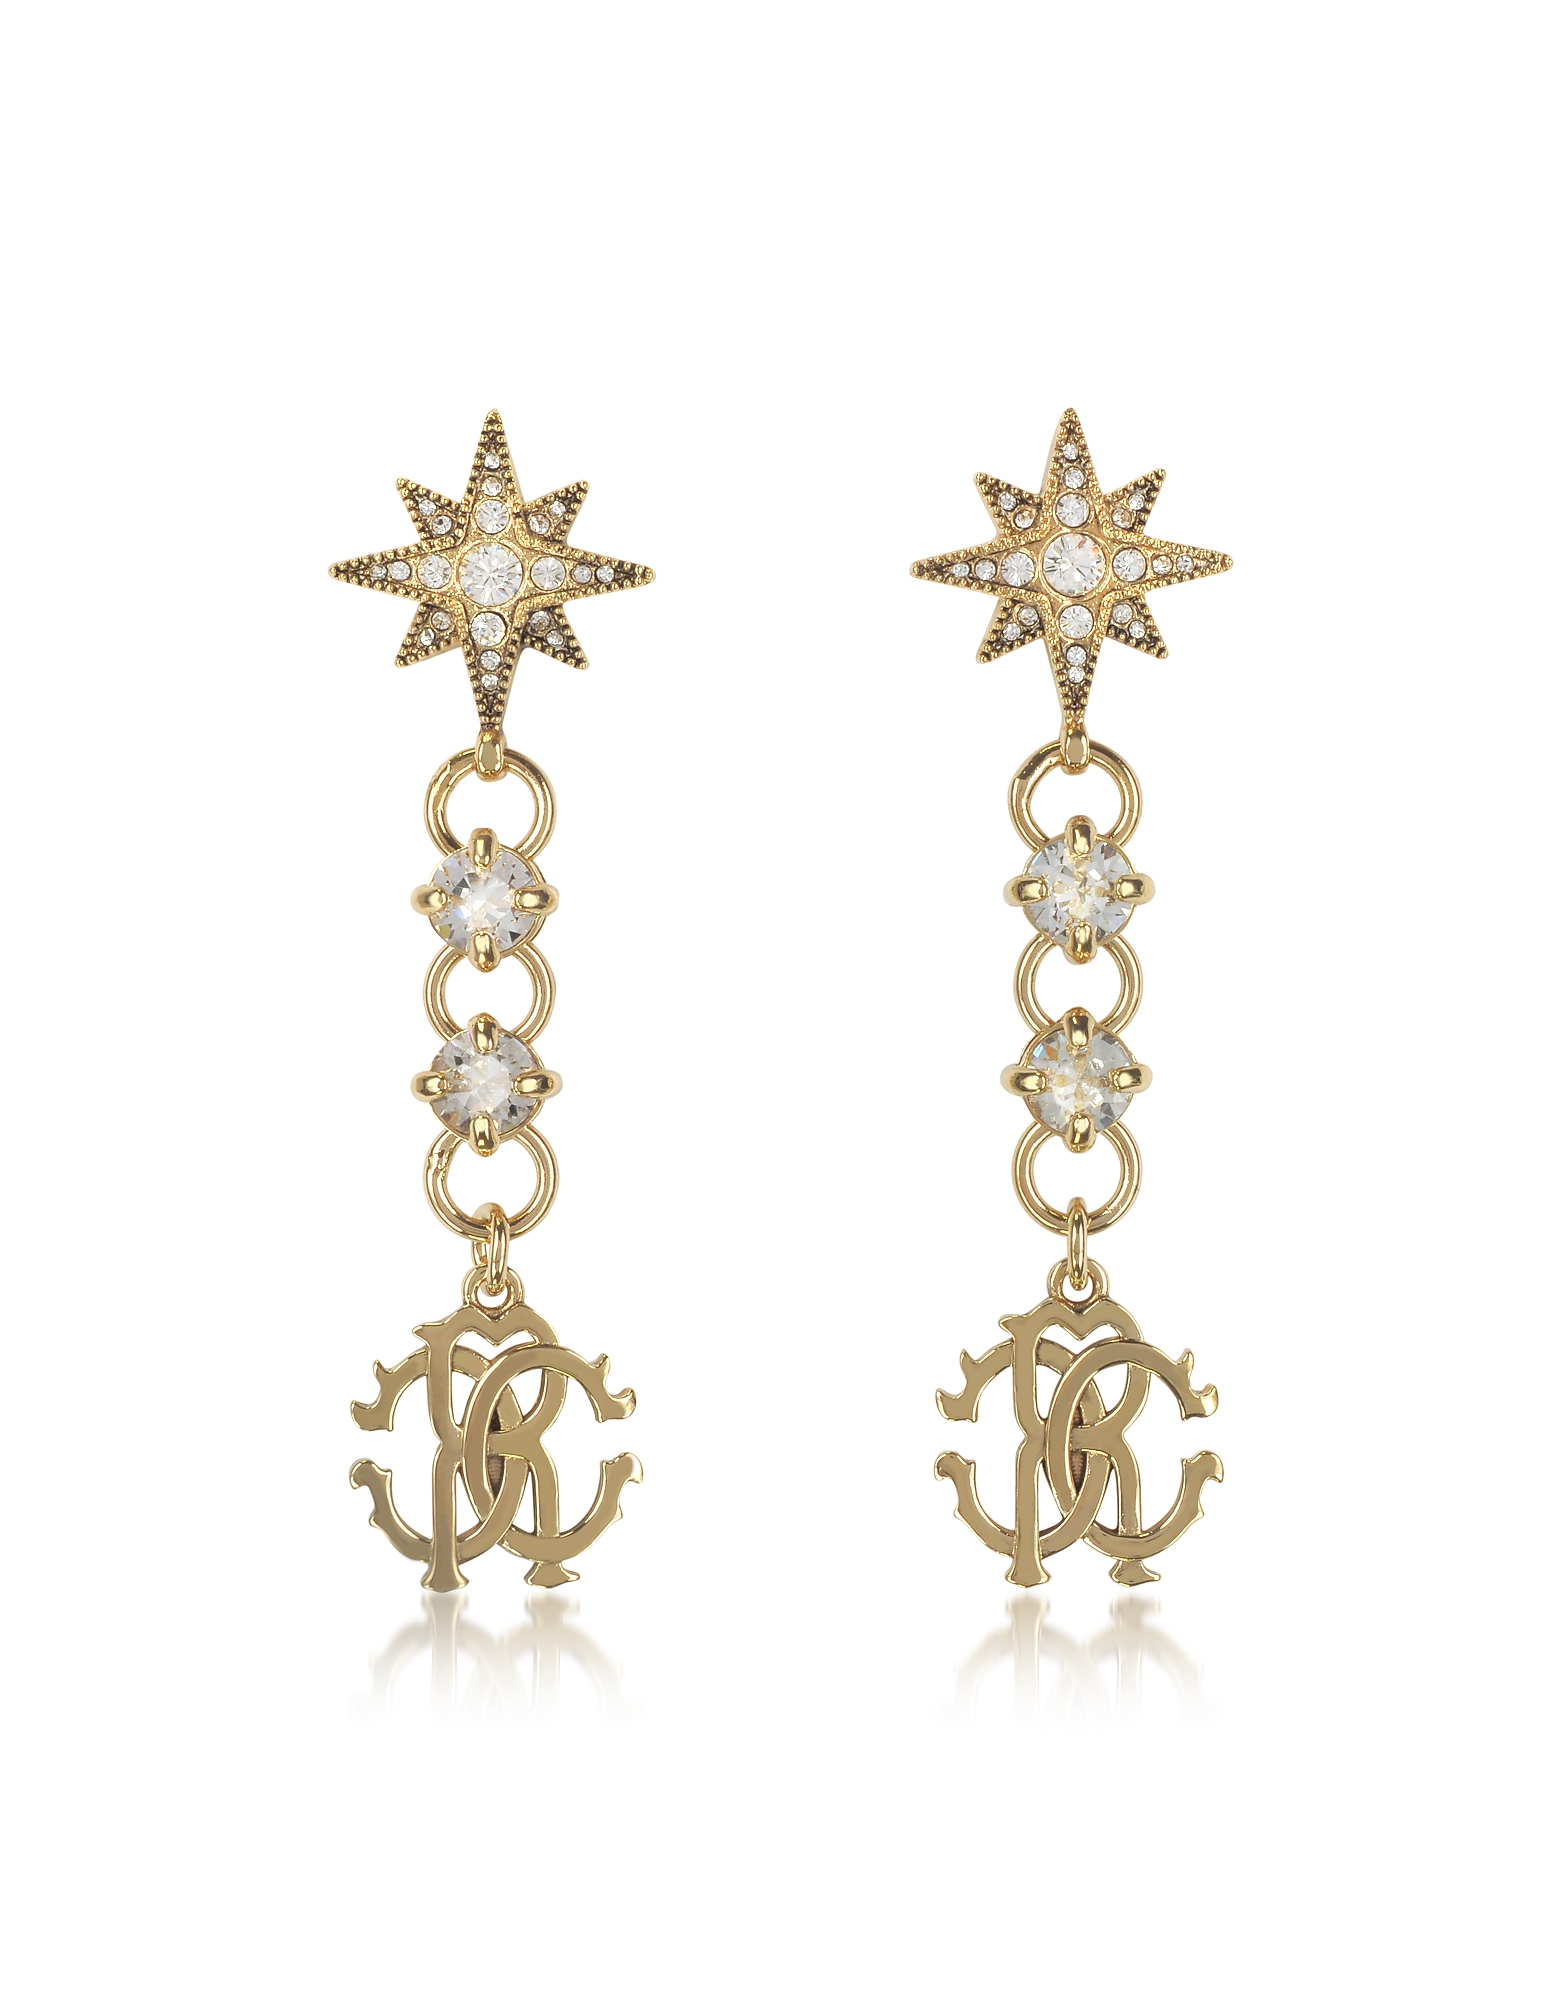 Roberto Cavalli Earrings, Icon Golden Star Earrings w/Crystals